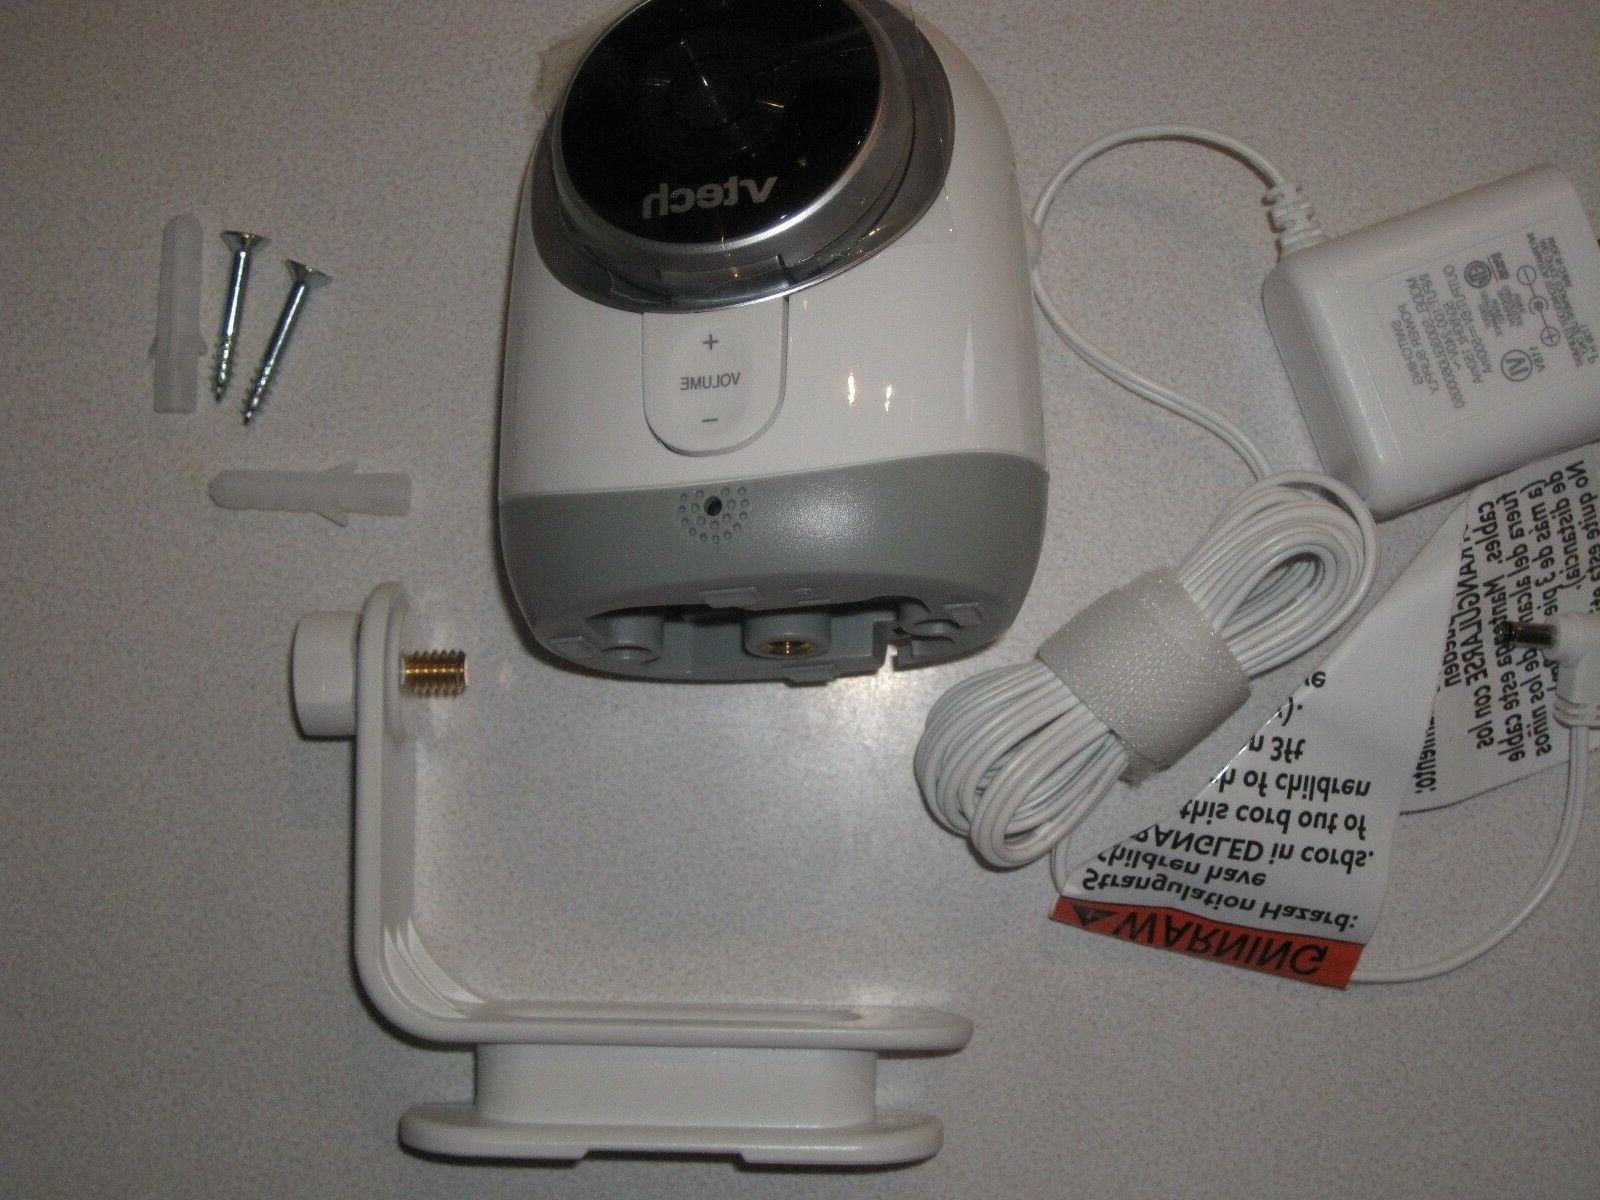 Extra camera for VTech VM3251 Video Baby Monitor